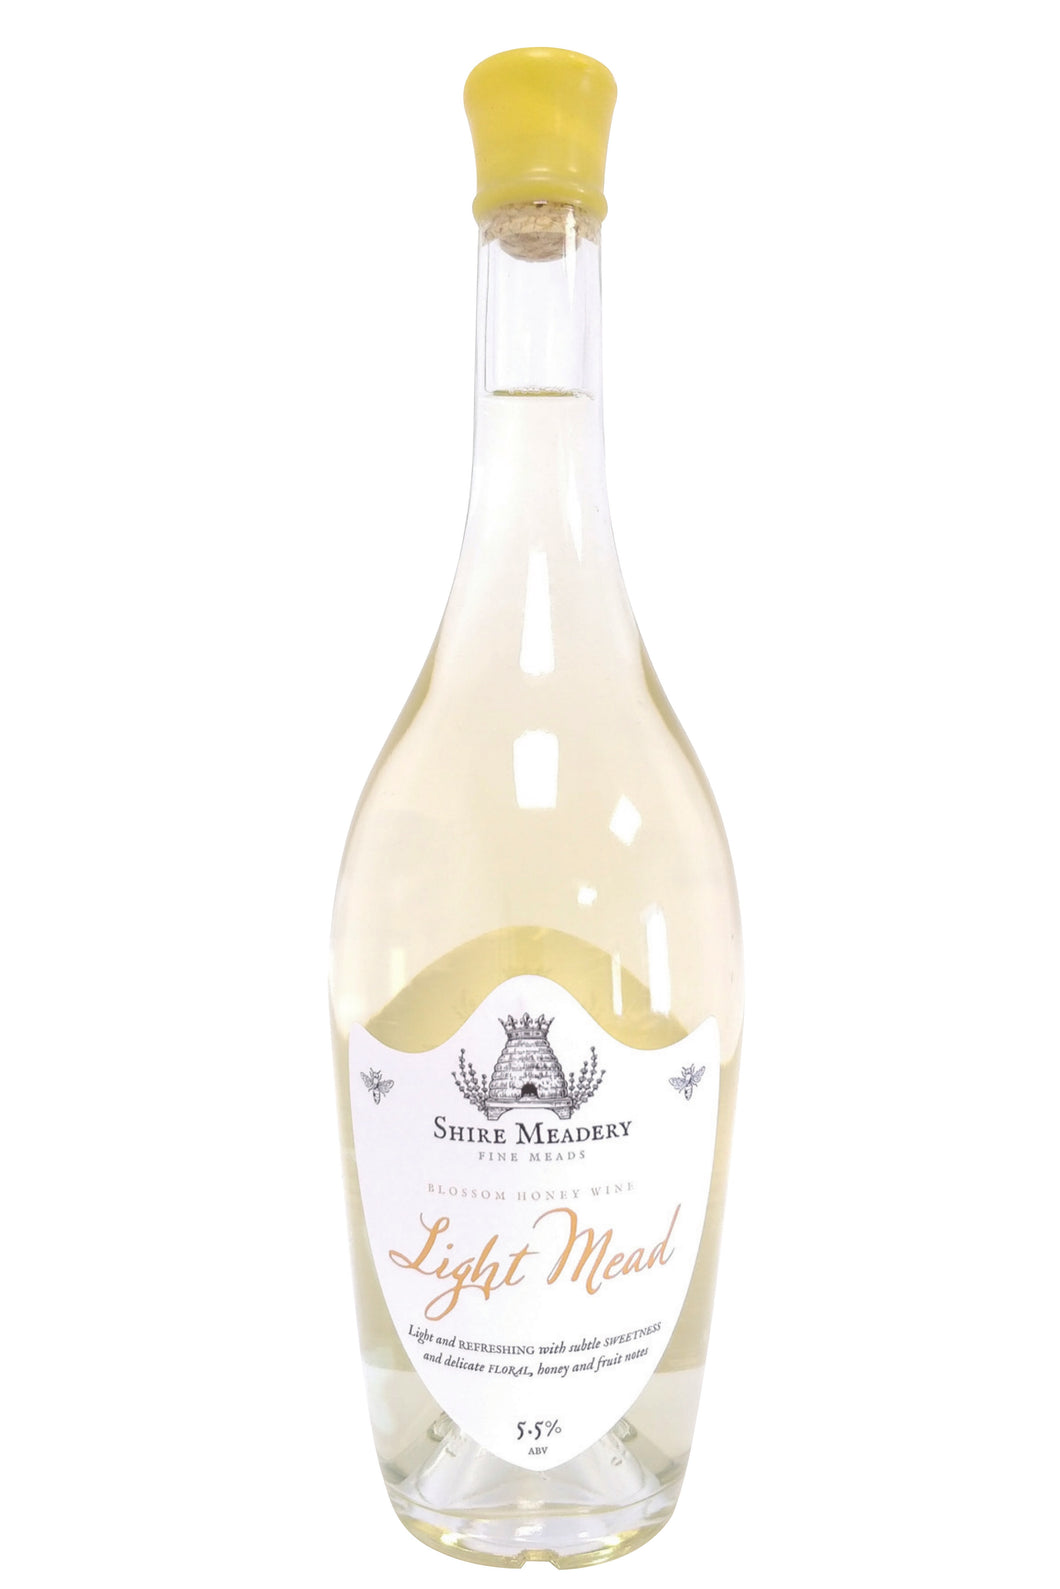 Light Mead (5.5%, 75cl)